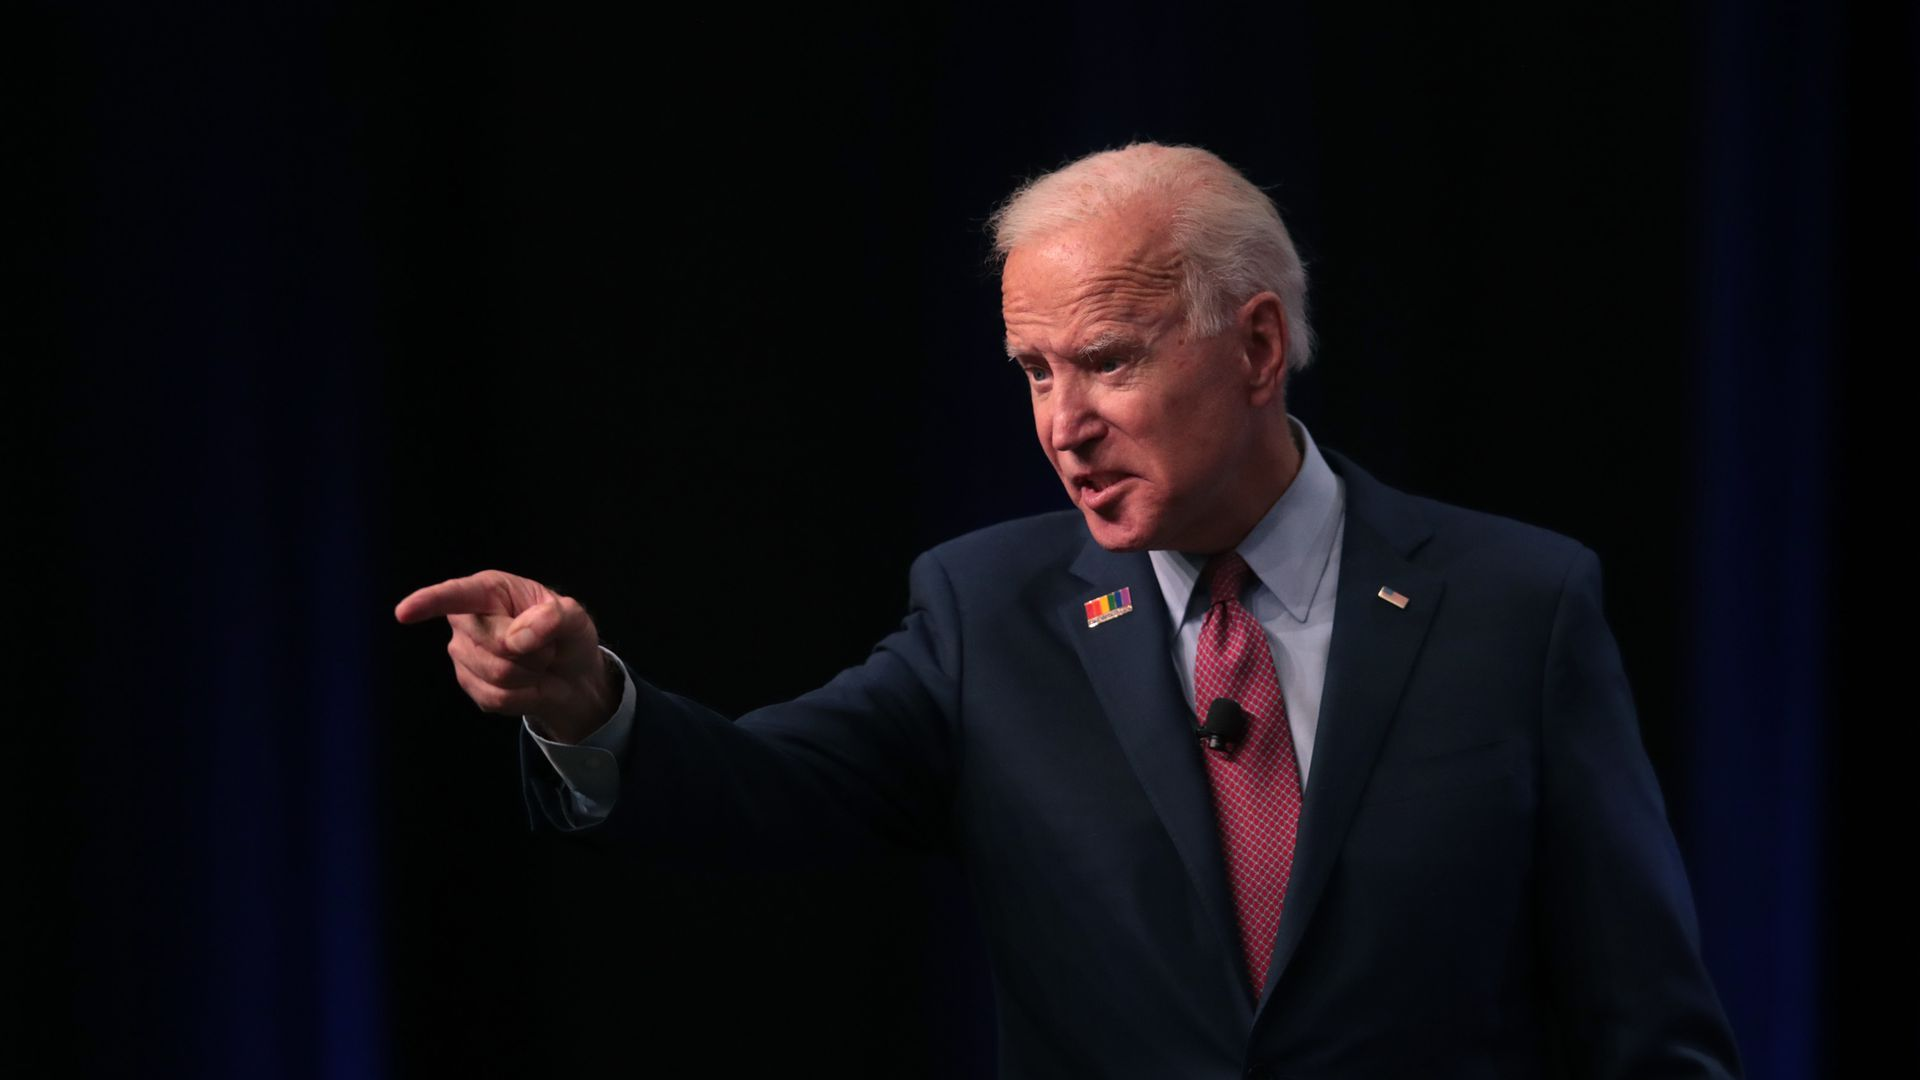 Targeting Trump, Biden campaign rolls out government anti-corruption plan